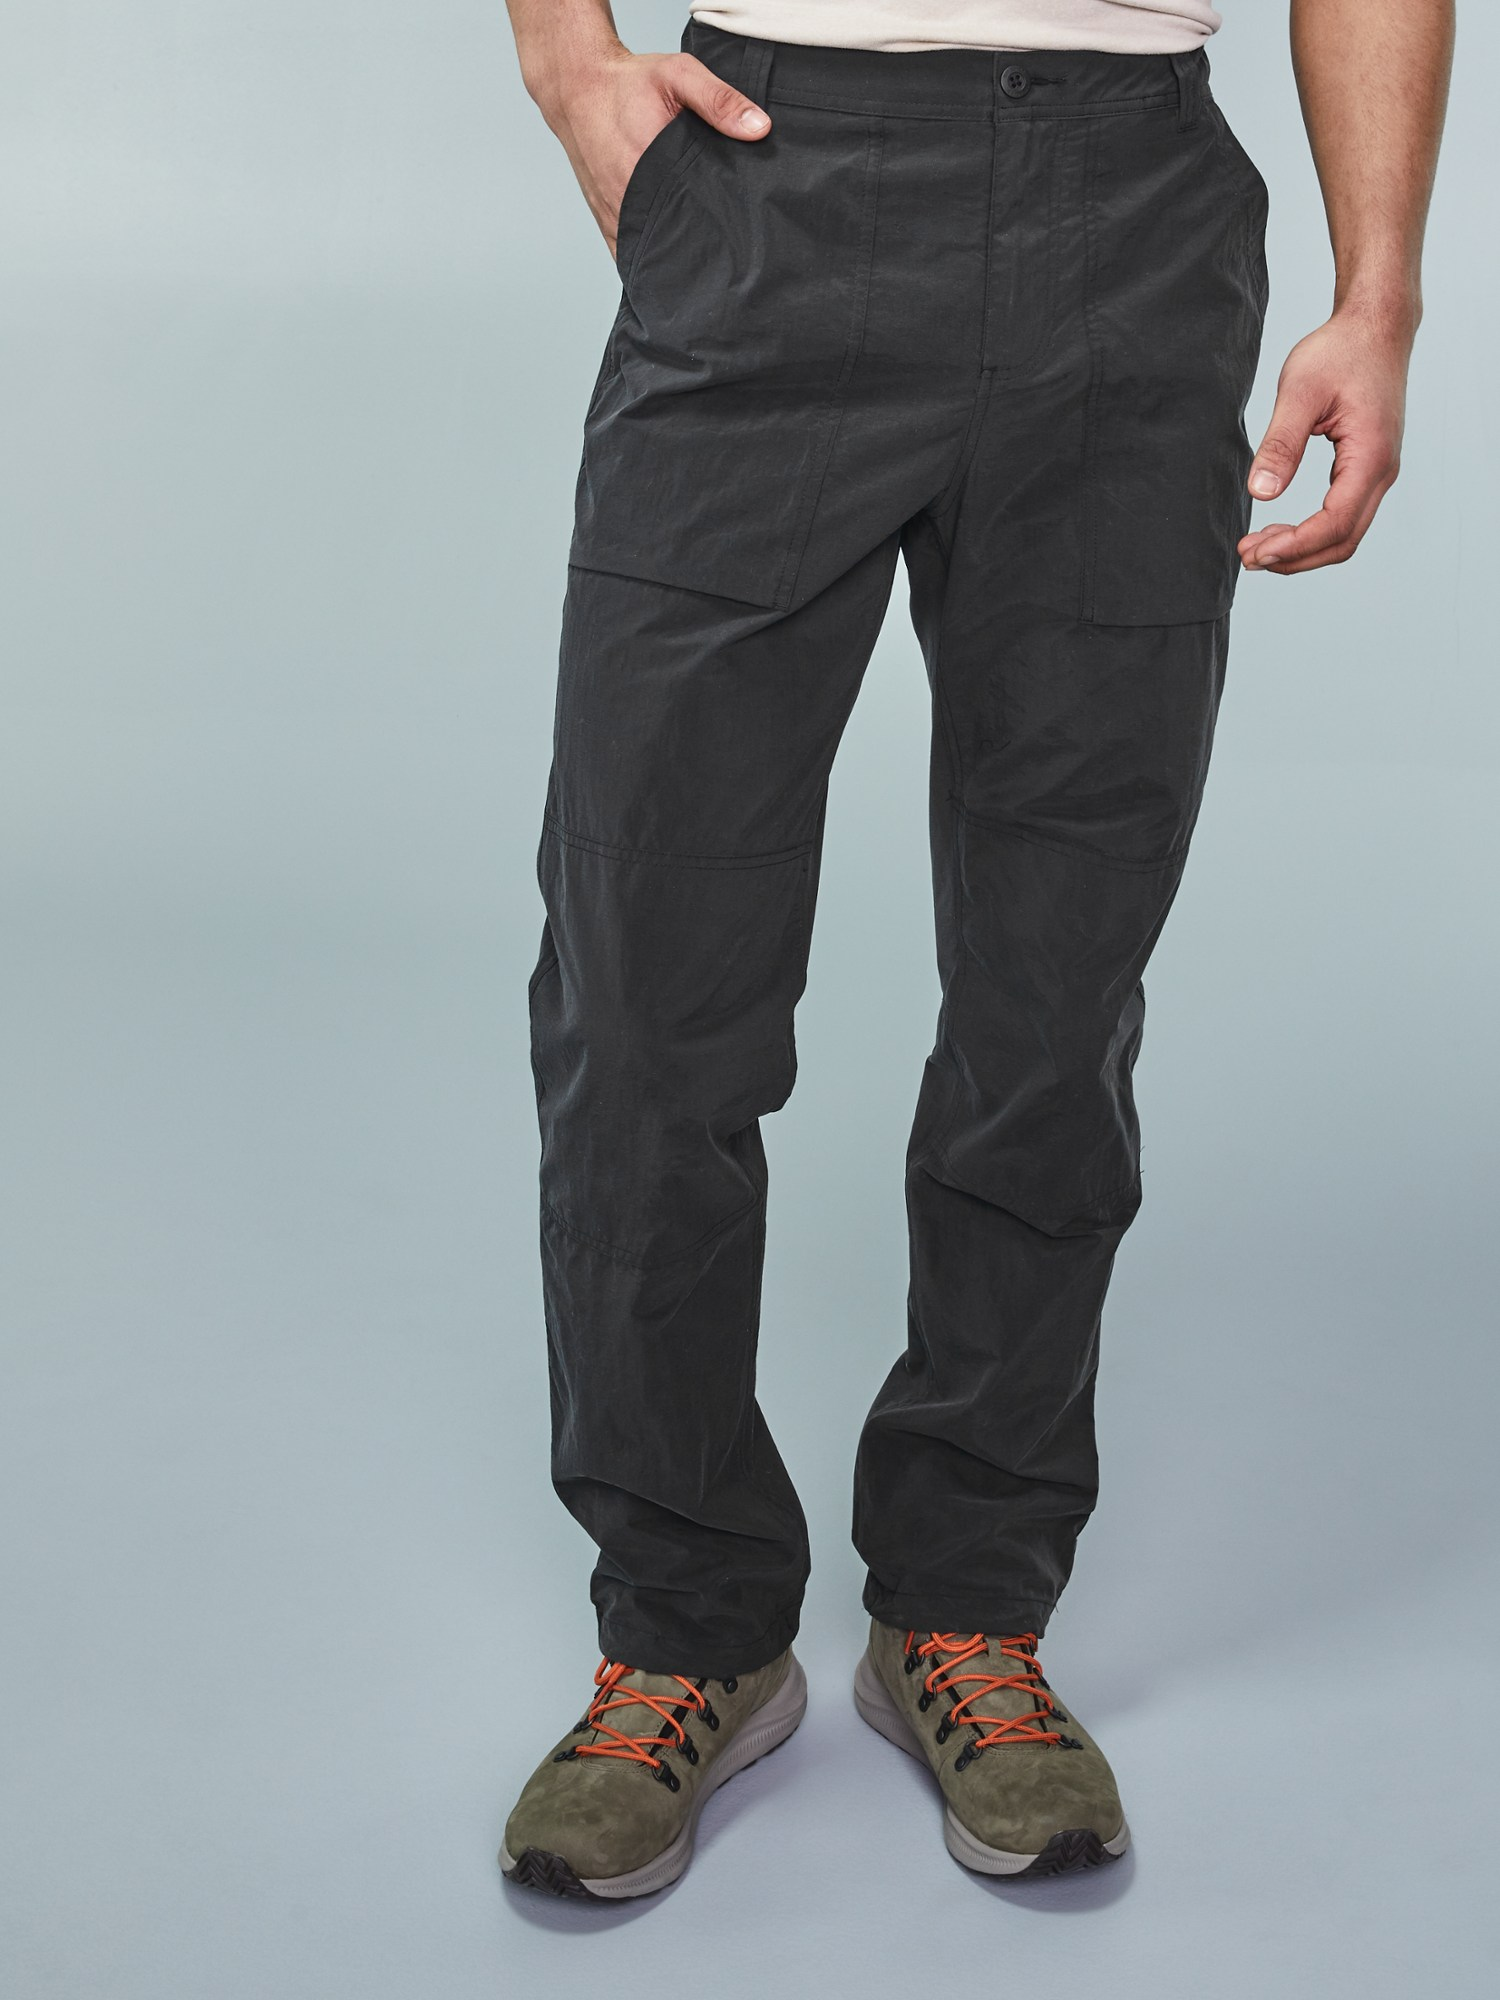 REI Co-op Savanna Trails Pants - Men's